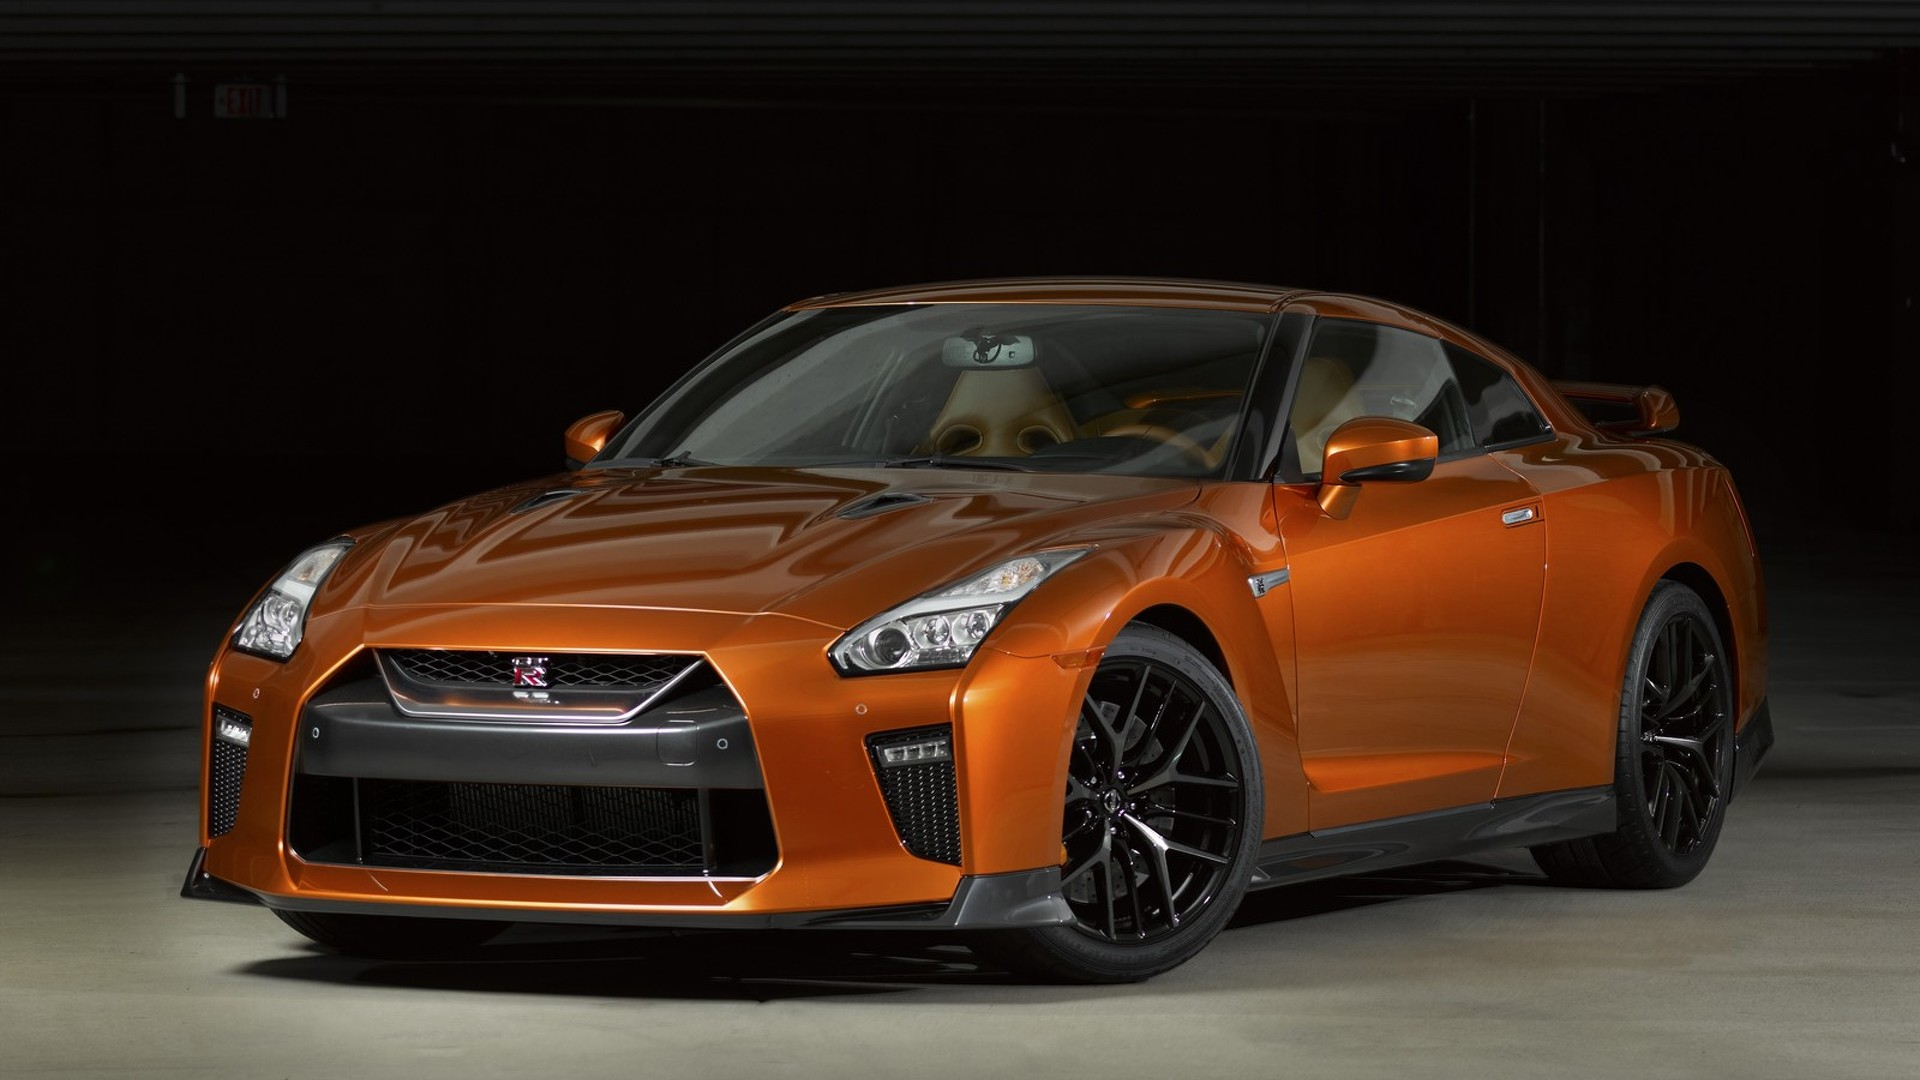 Nissan Gt R News And Reviews Motor1 Com